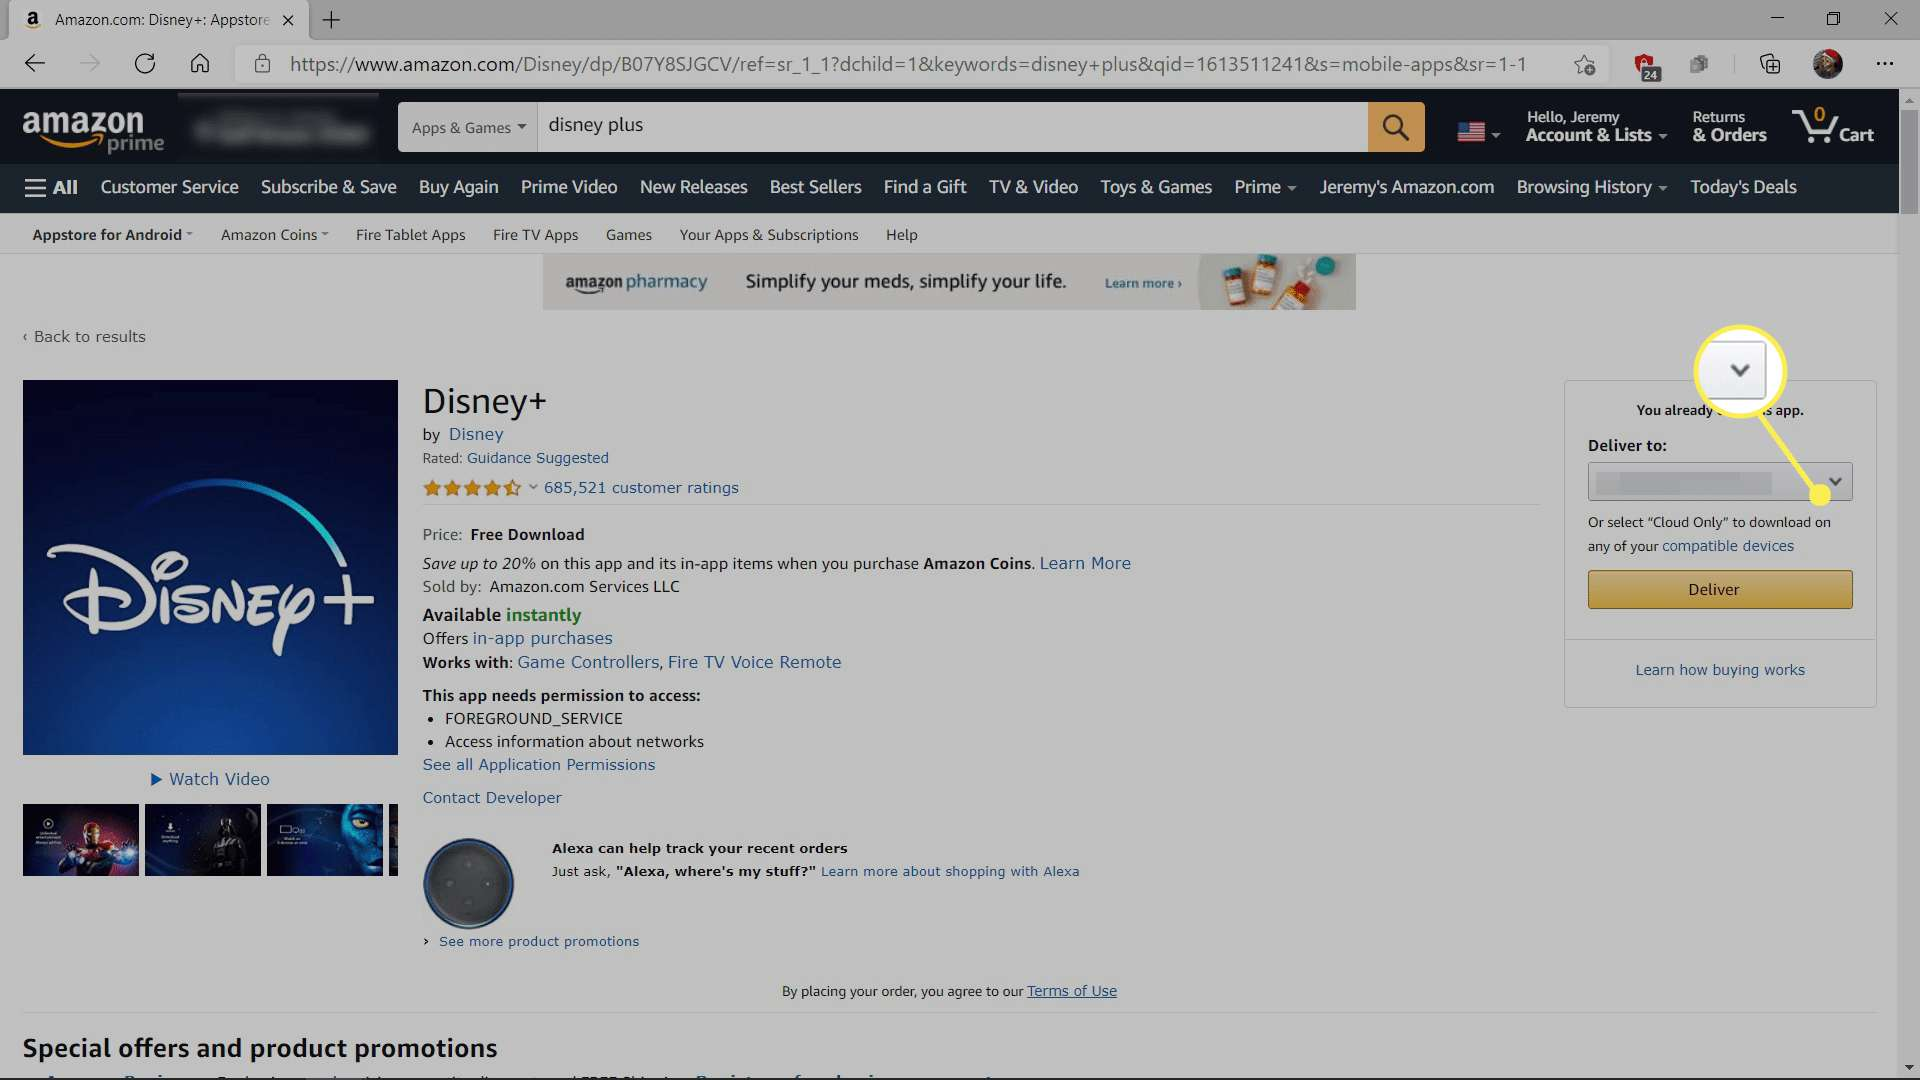 Disney Plus on Amazon with the Deliver to dropdown highlighted